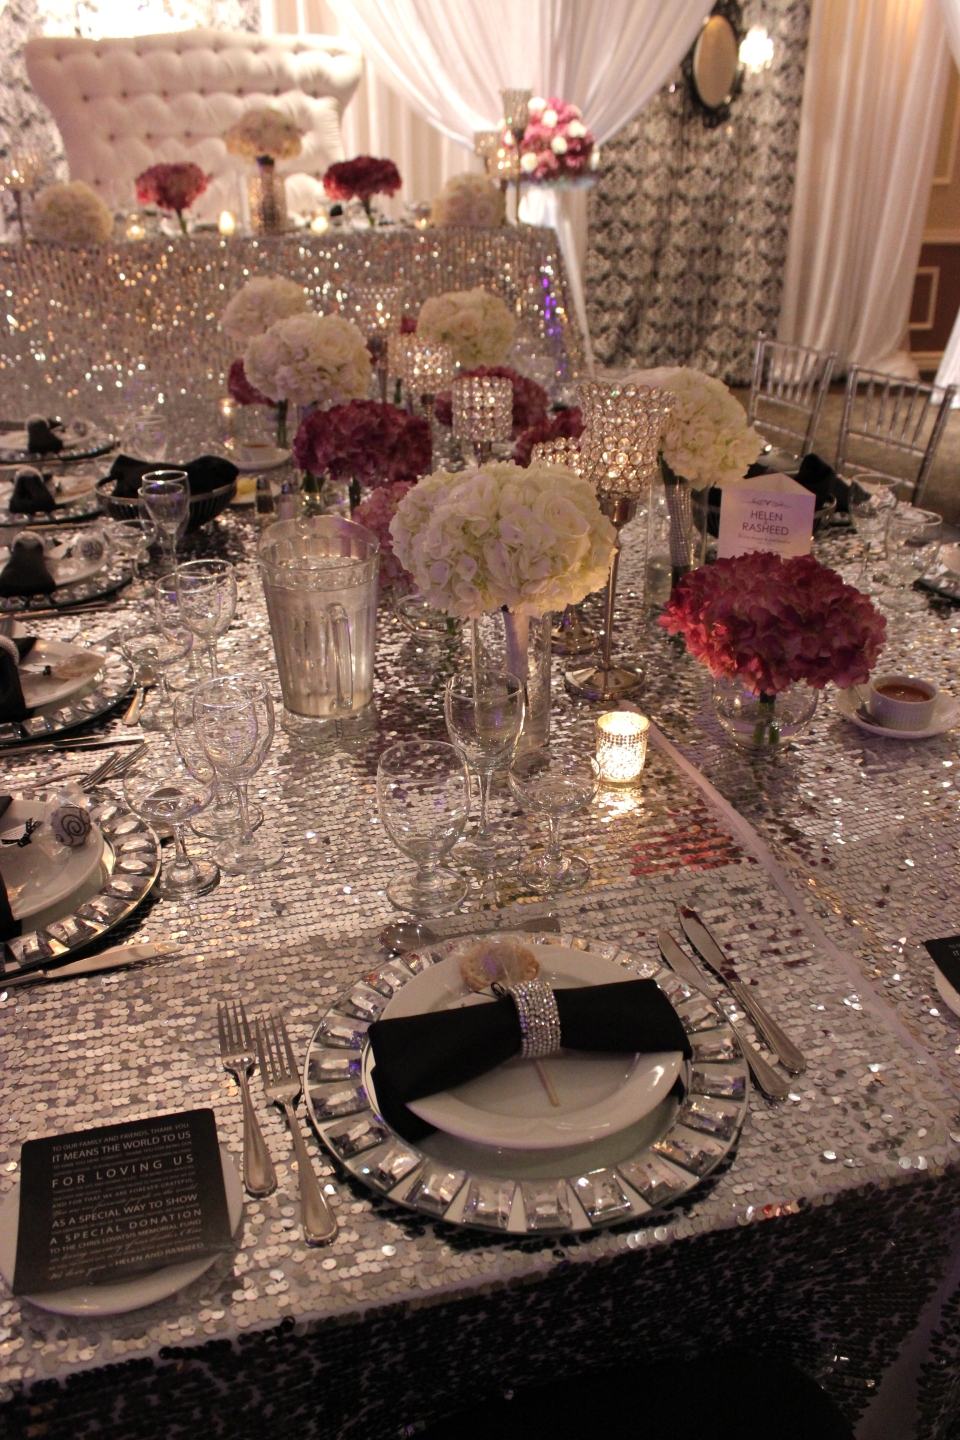 Black, white and silver head table design with purple flowers